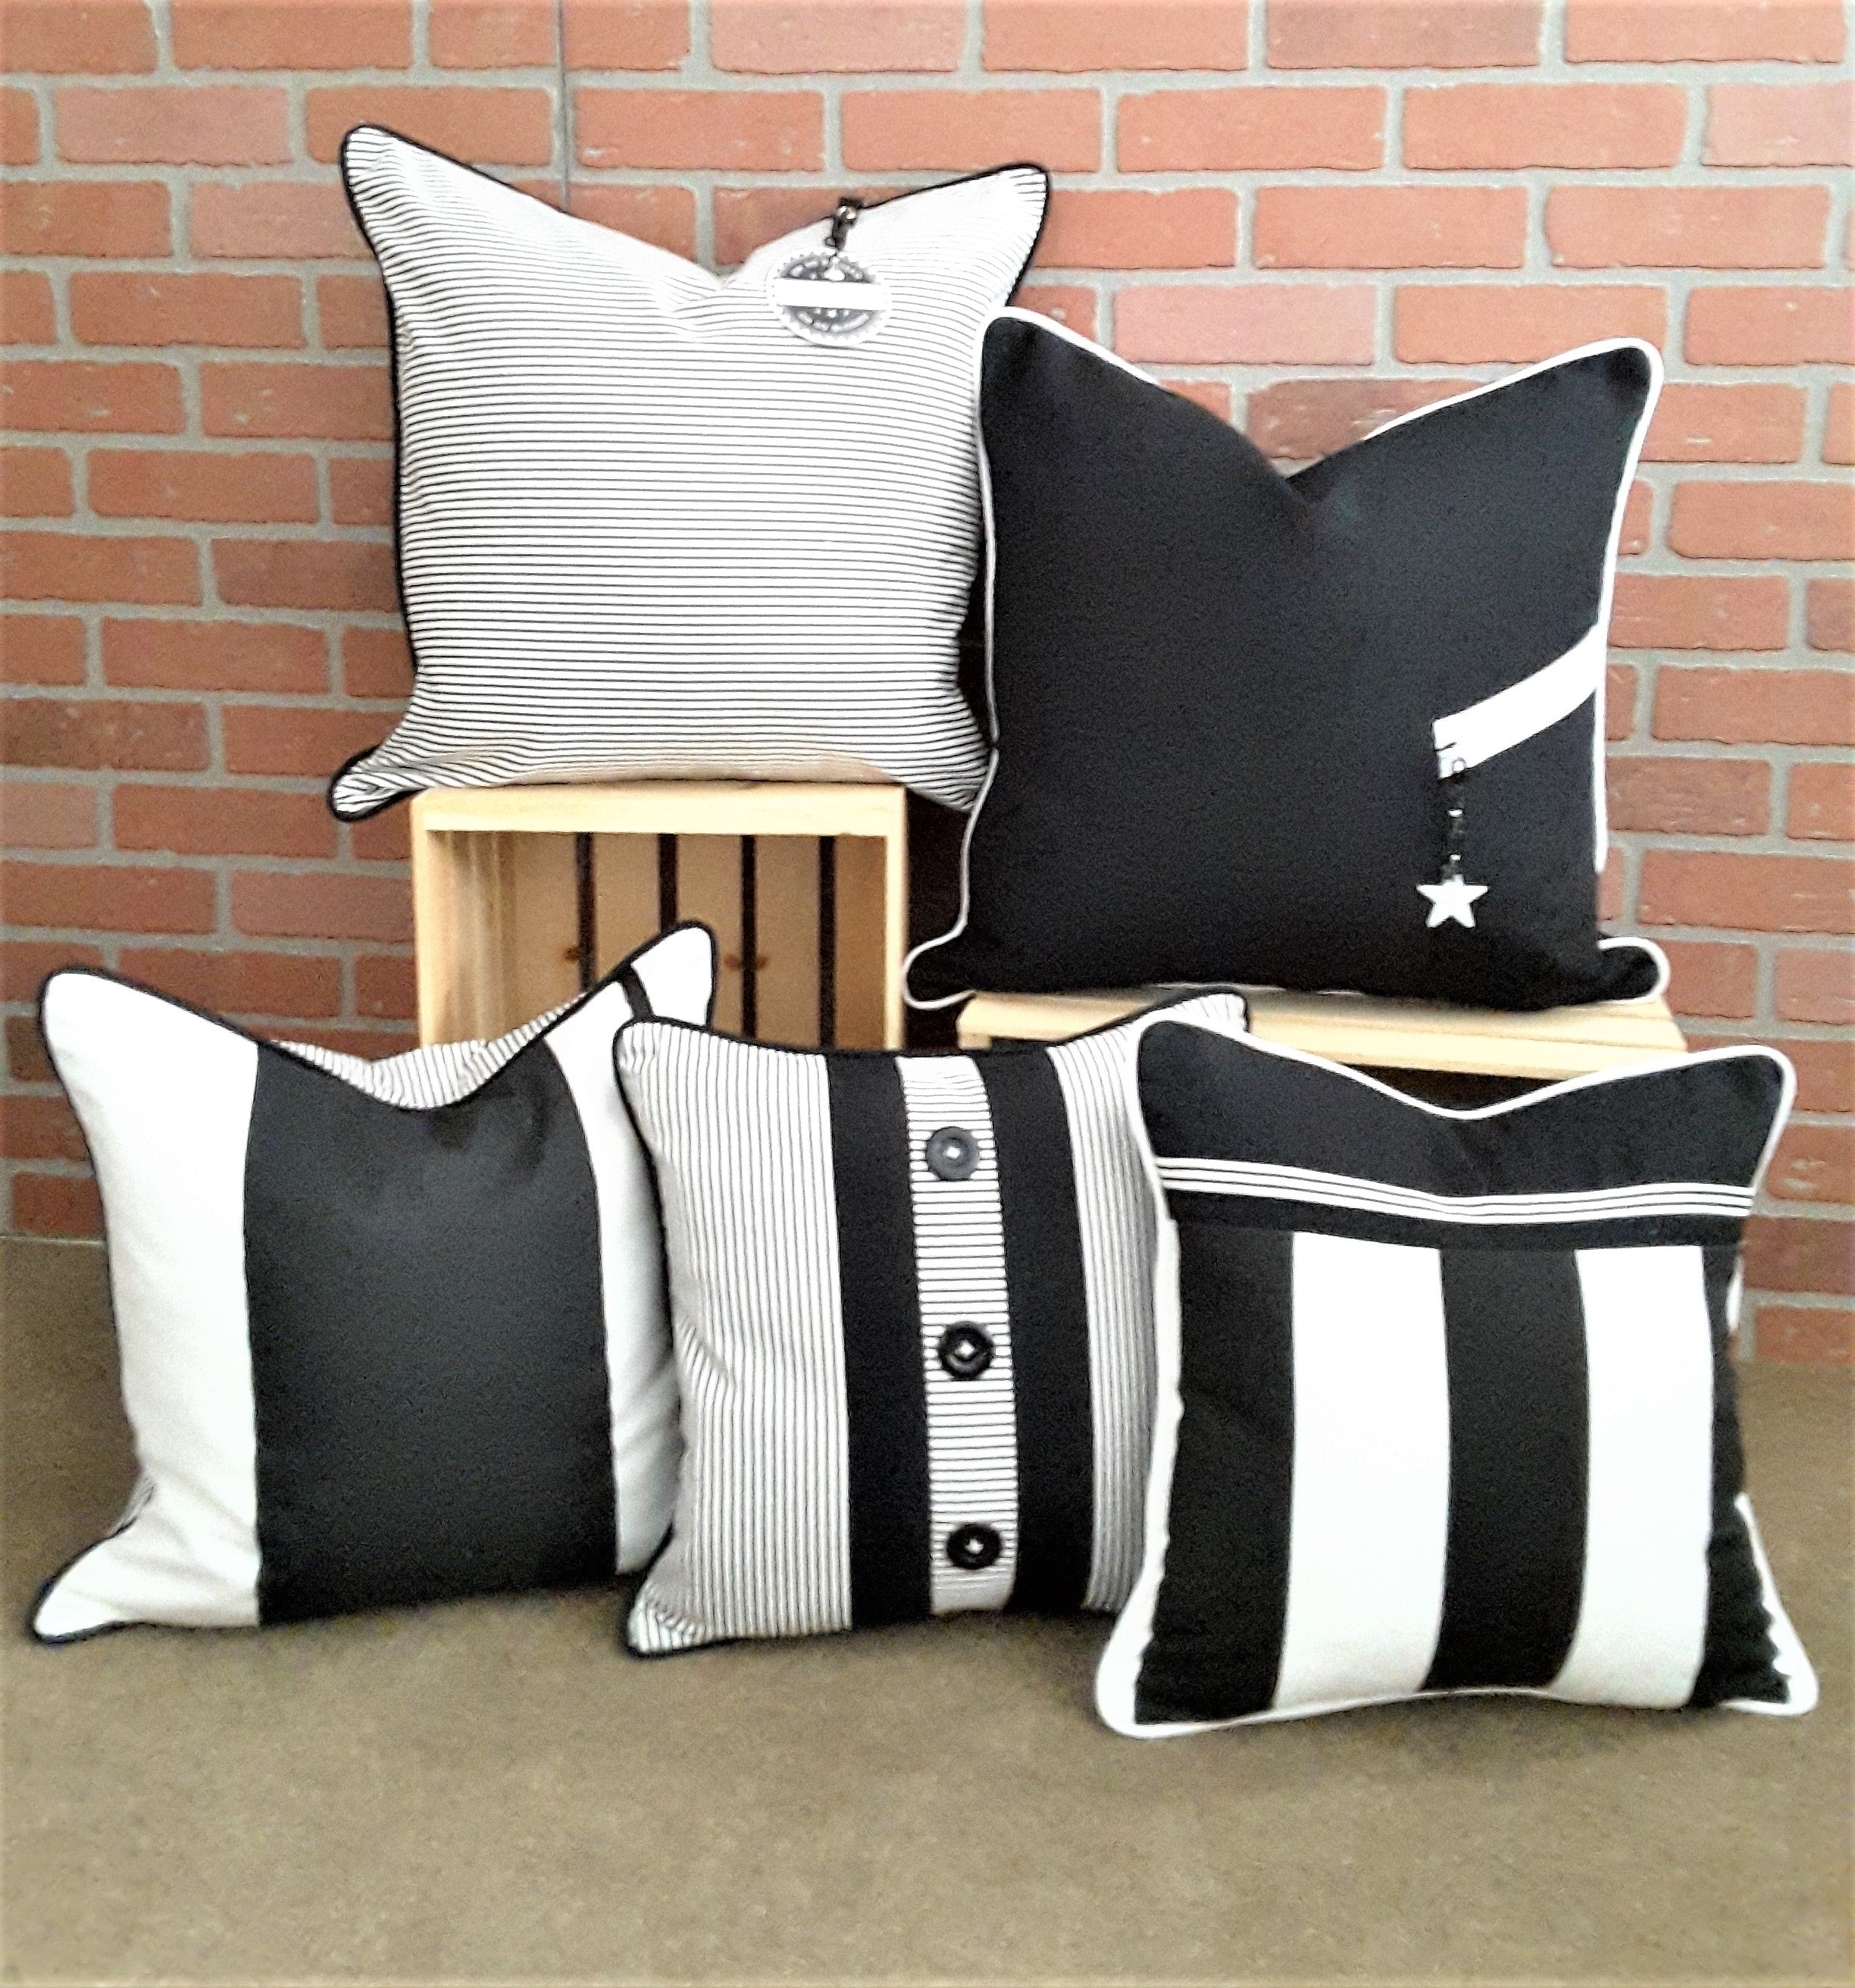 ALEXANNDRA CARINGTON COLLECTION OF BLACK & WHITE PILLOWS